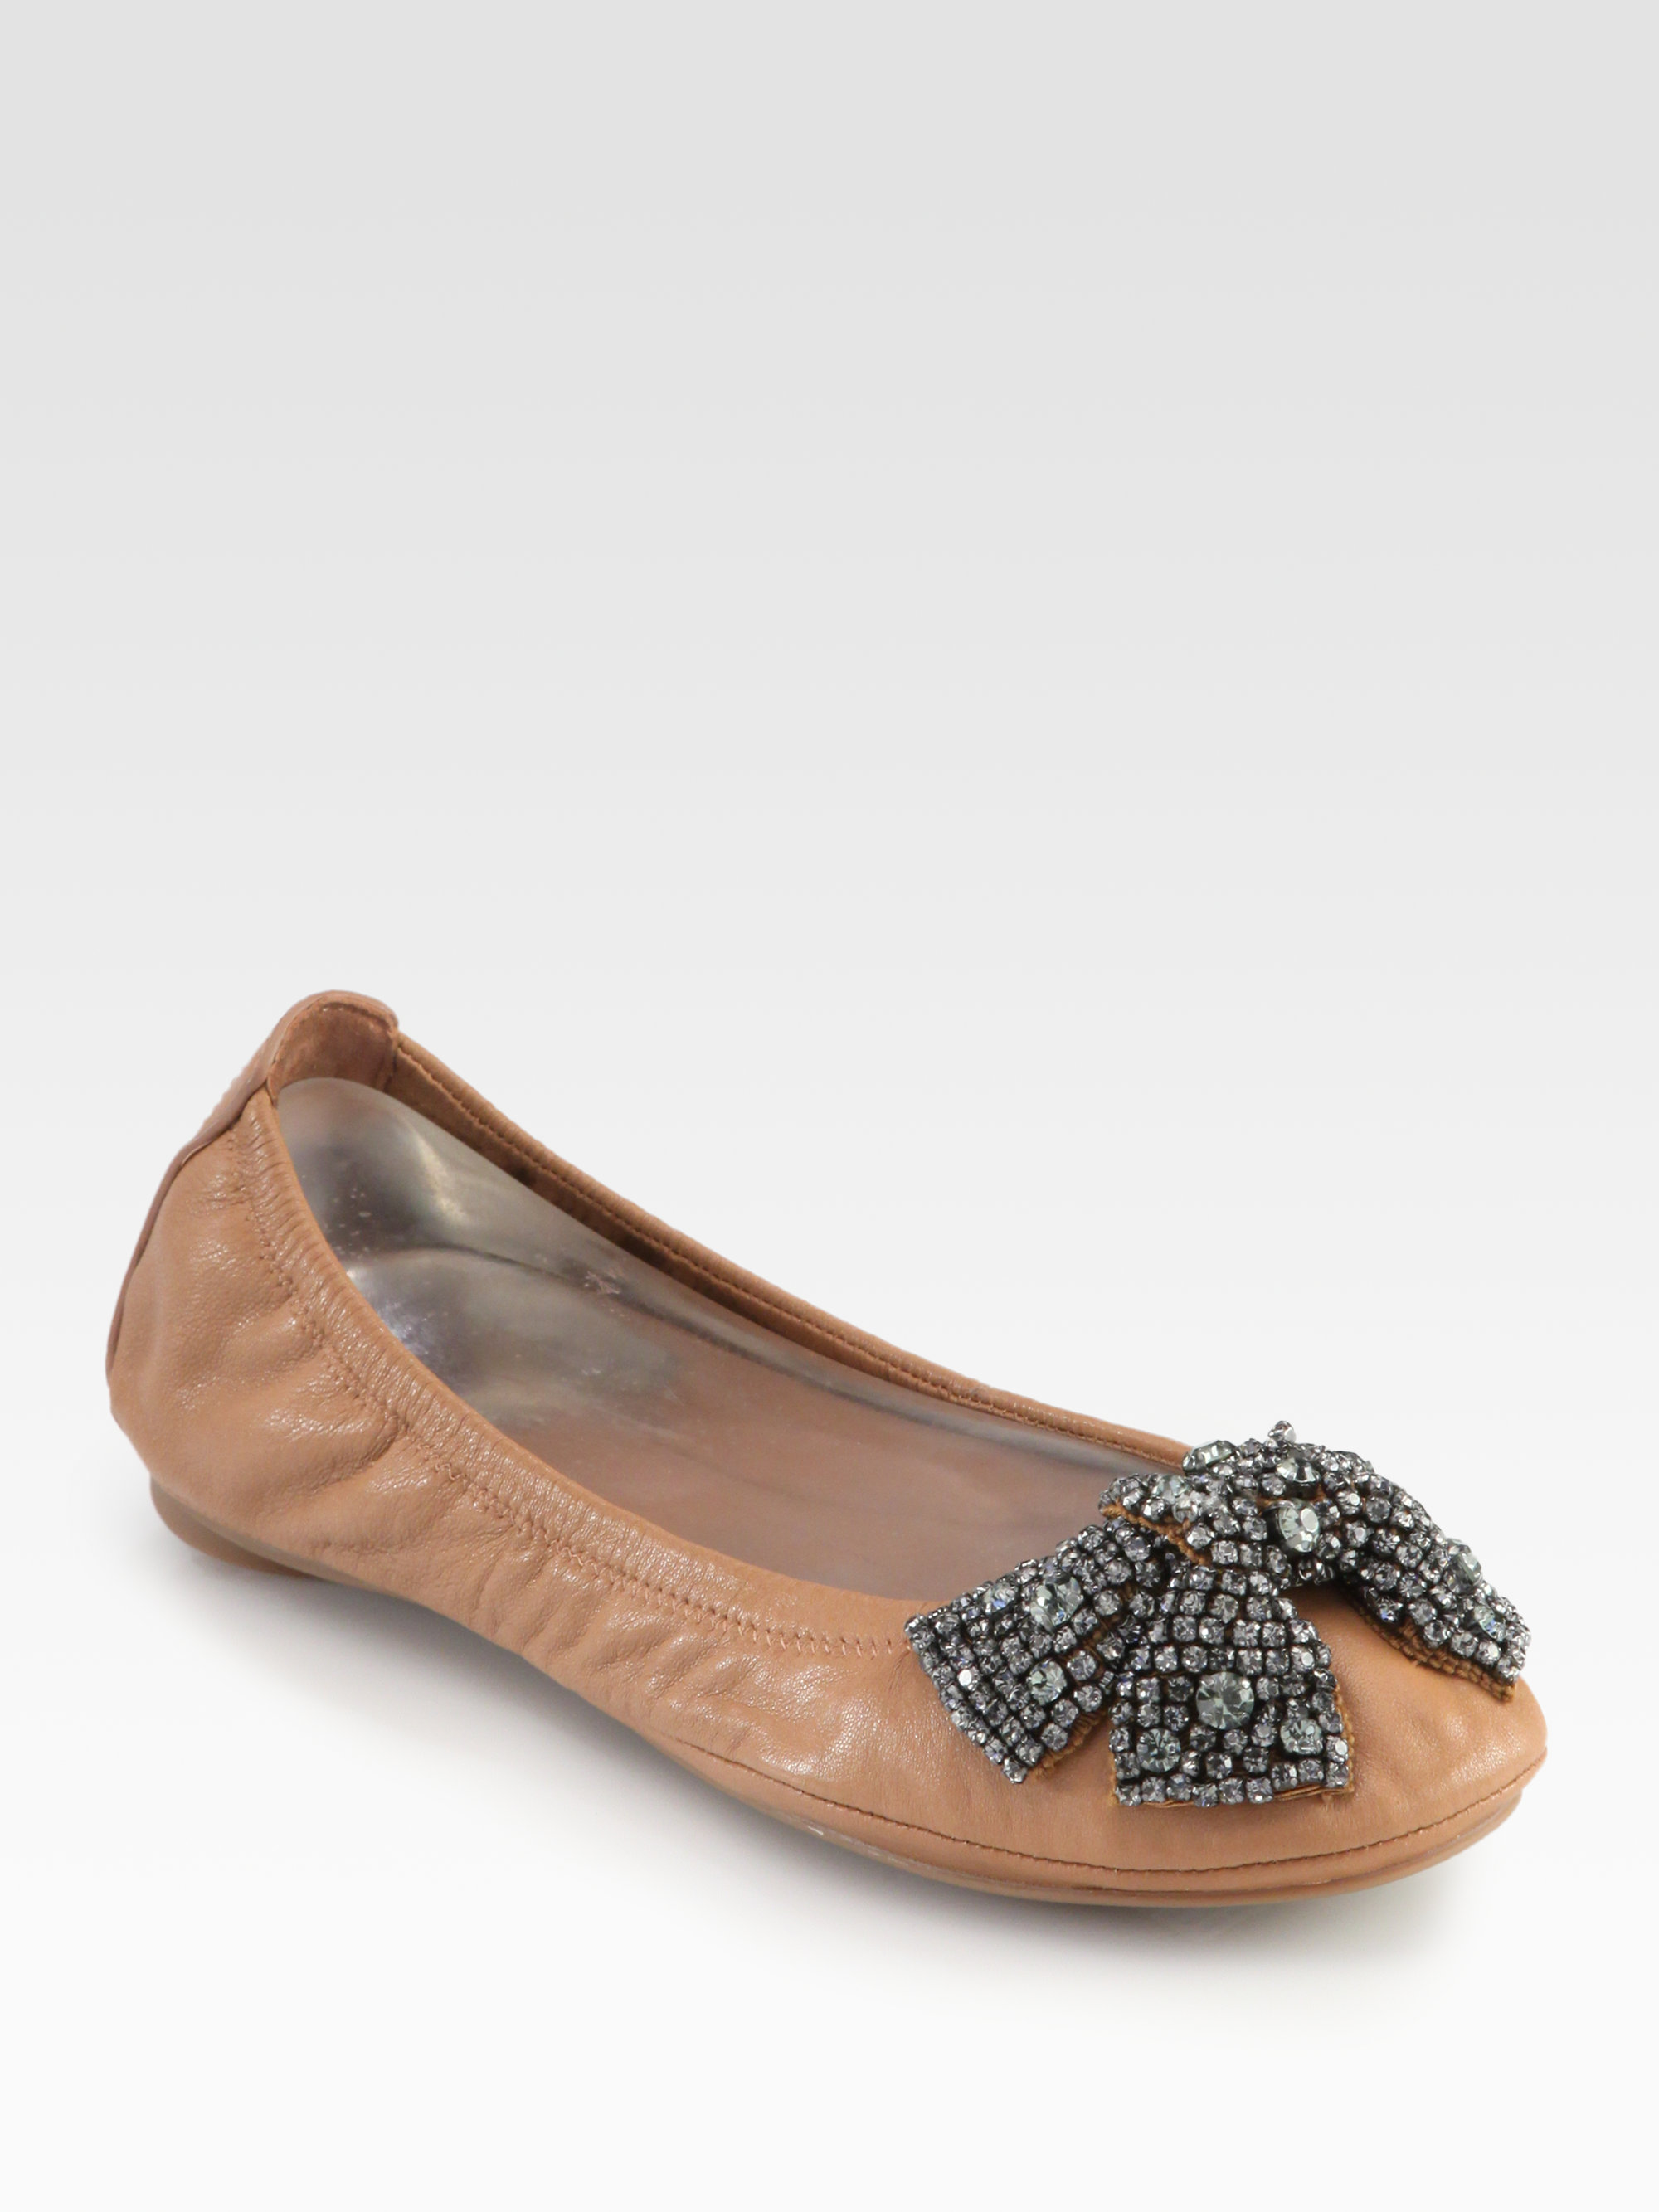 5d2ecd92166e Lyst - Tory Burch Eddie Leather Crystal Bow Ballet Flats in Brown